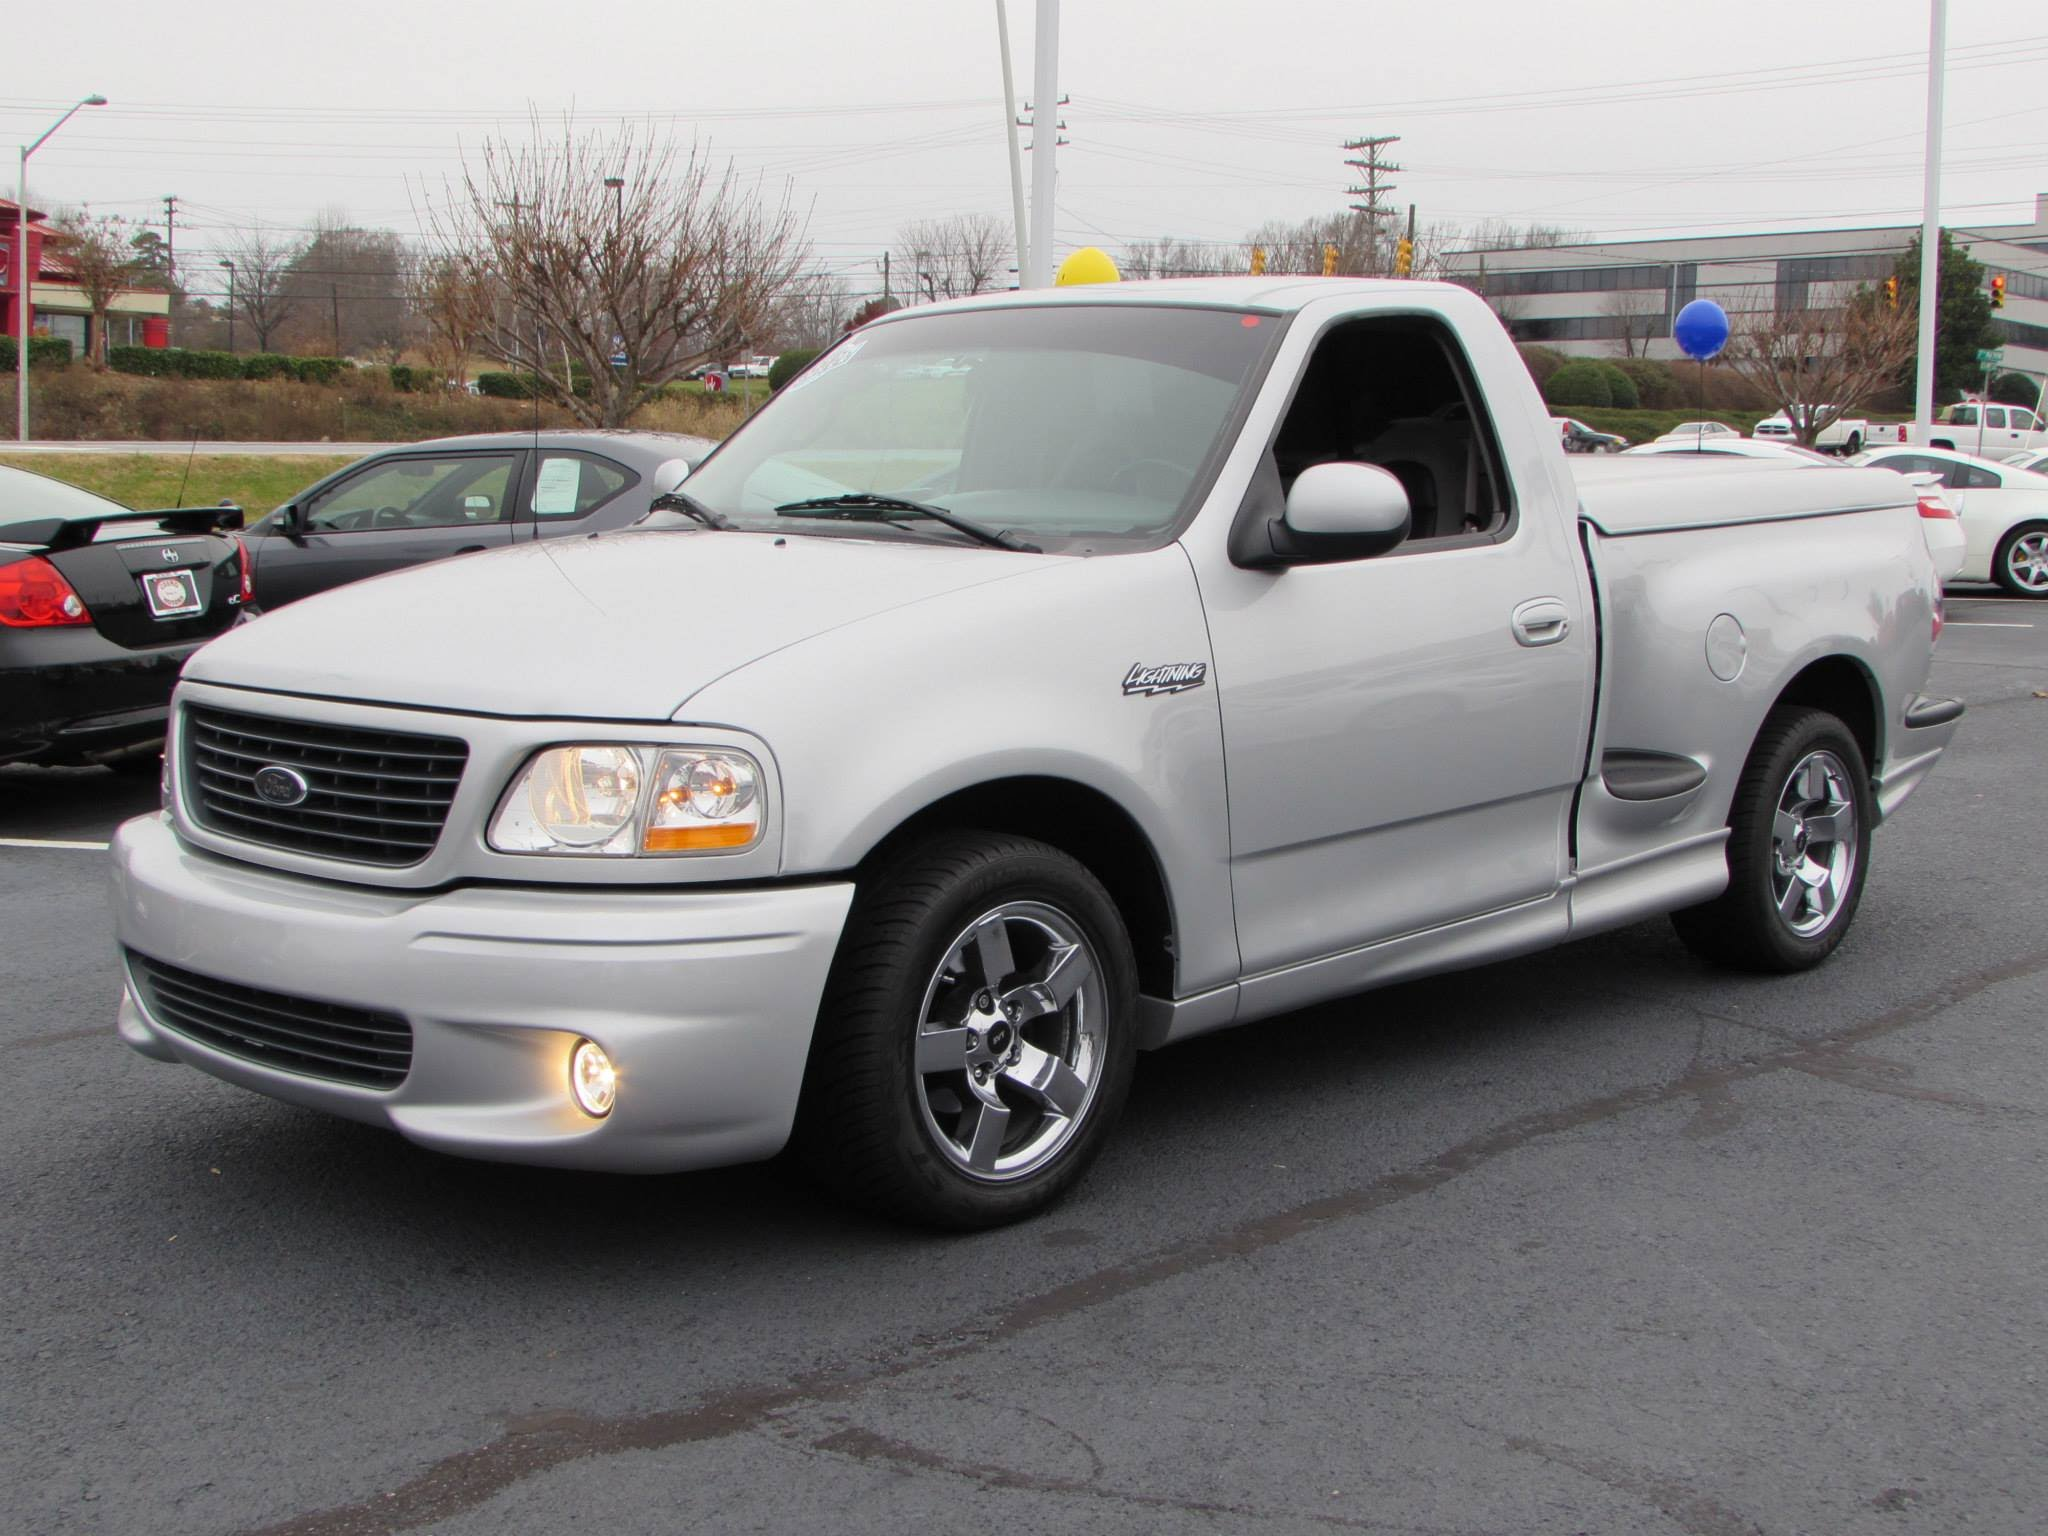 Ford F-150 Svt Lightning #5